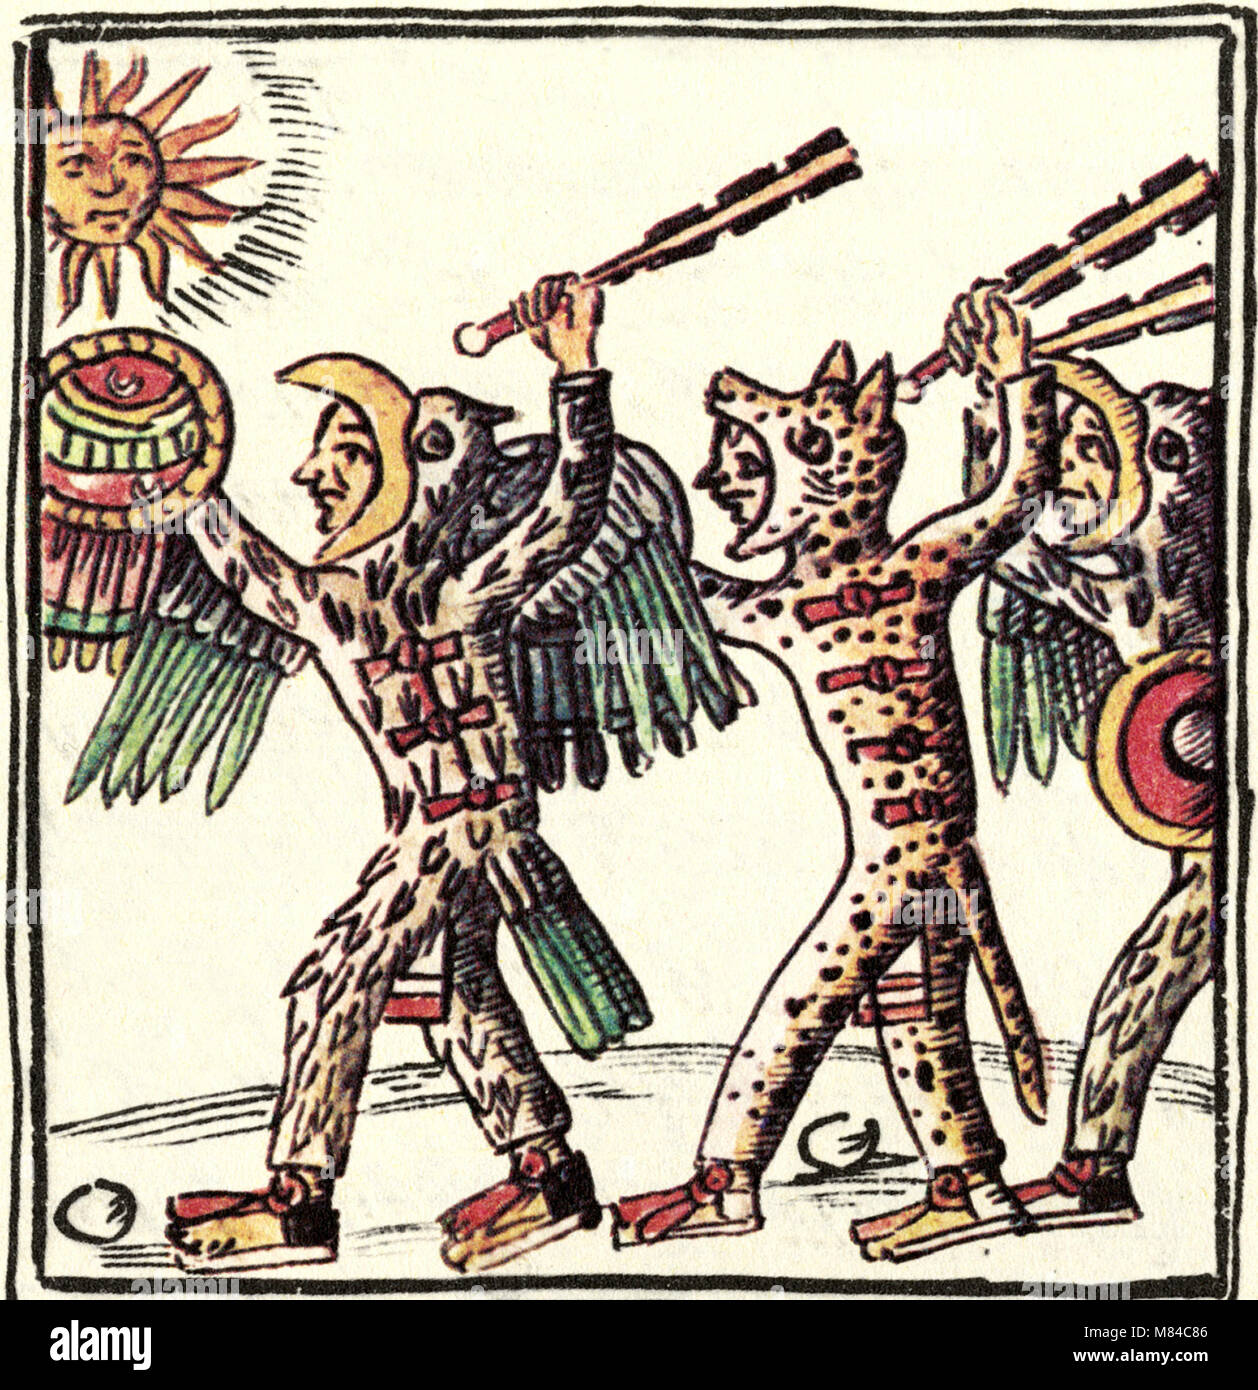 Florentine Codex. An illustration from the Florentine Codex depicting Aztec warriors carrying macuahuitls - Stock Image